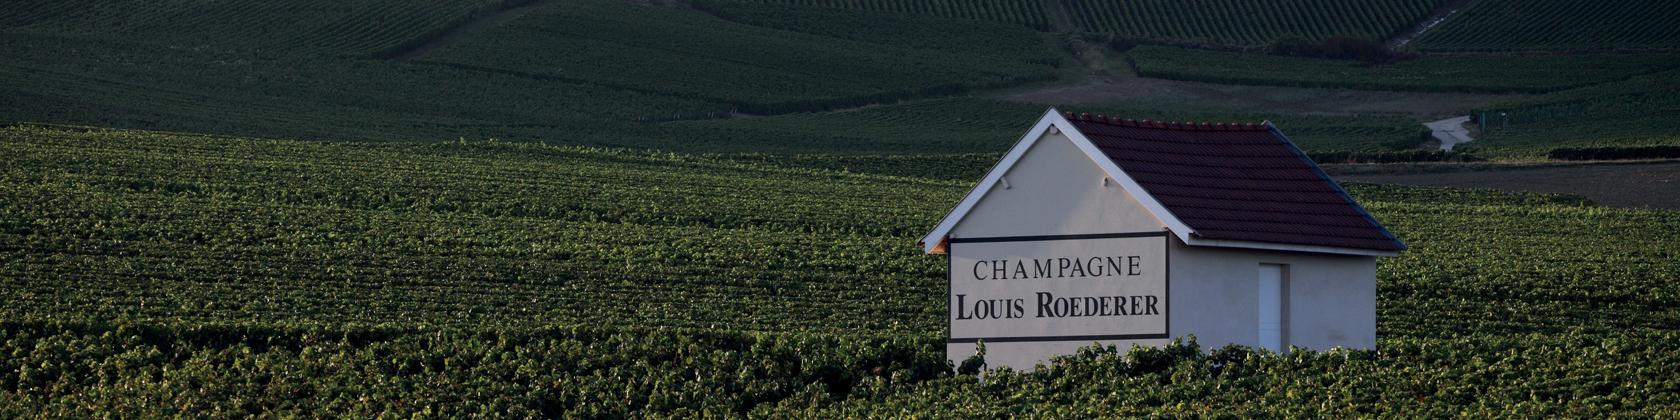 Champagne LOUIS ROEDERER: Weinberge